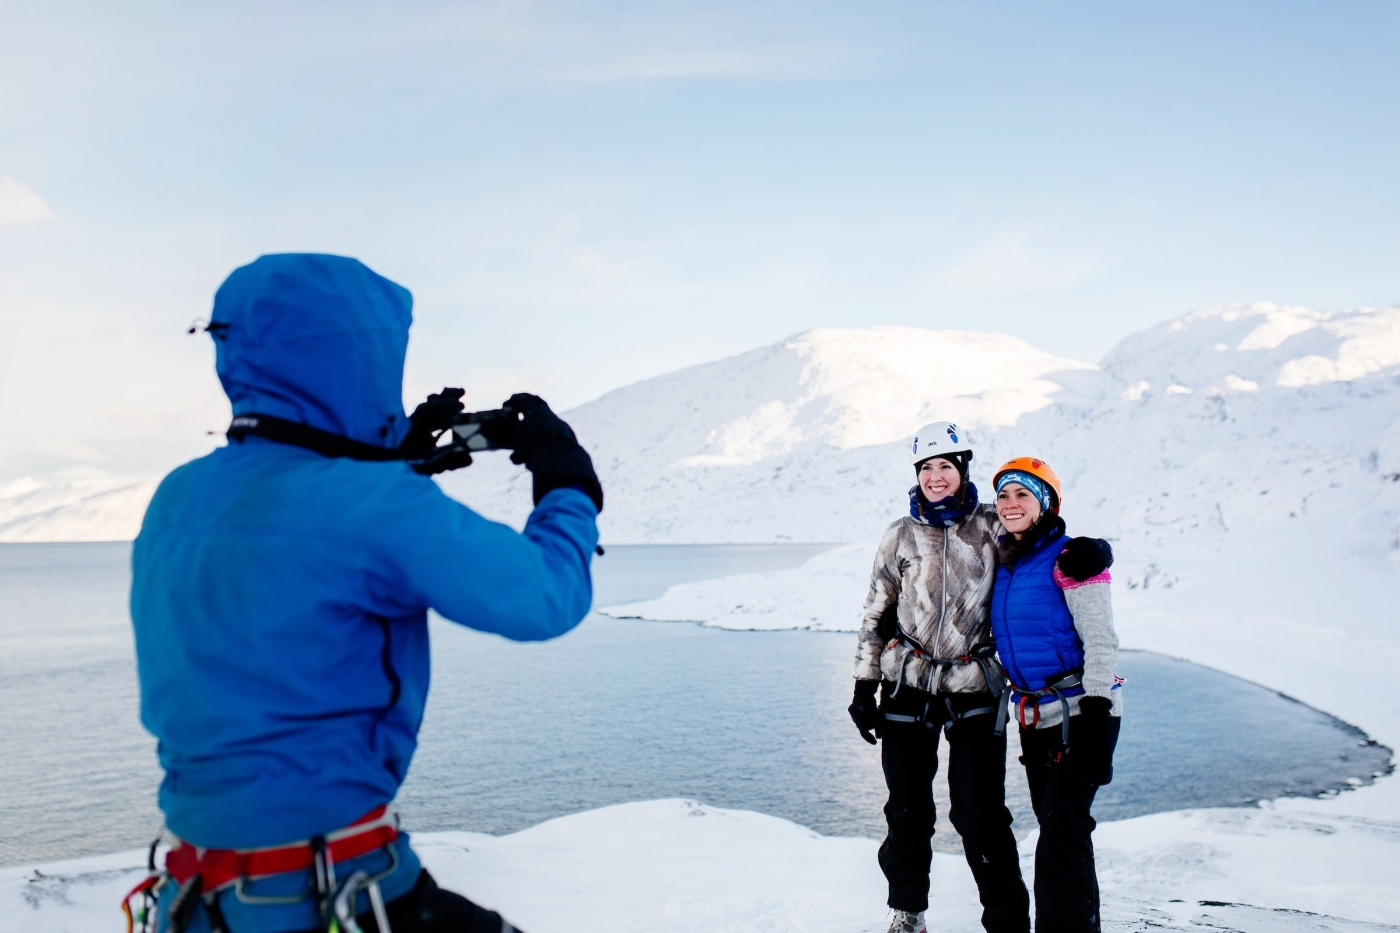 Mountain guide Marc Carreras taking photos of tourist on a winter hike in Nuuk in Greenland. By Rebecca Gustafsson